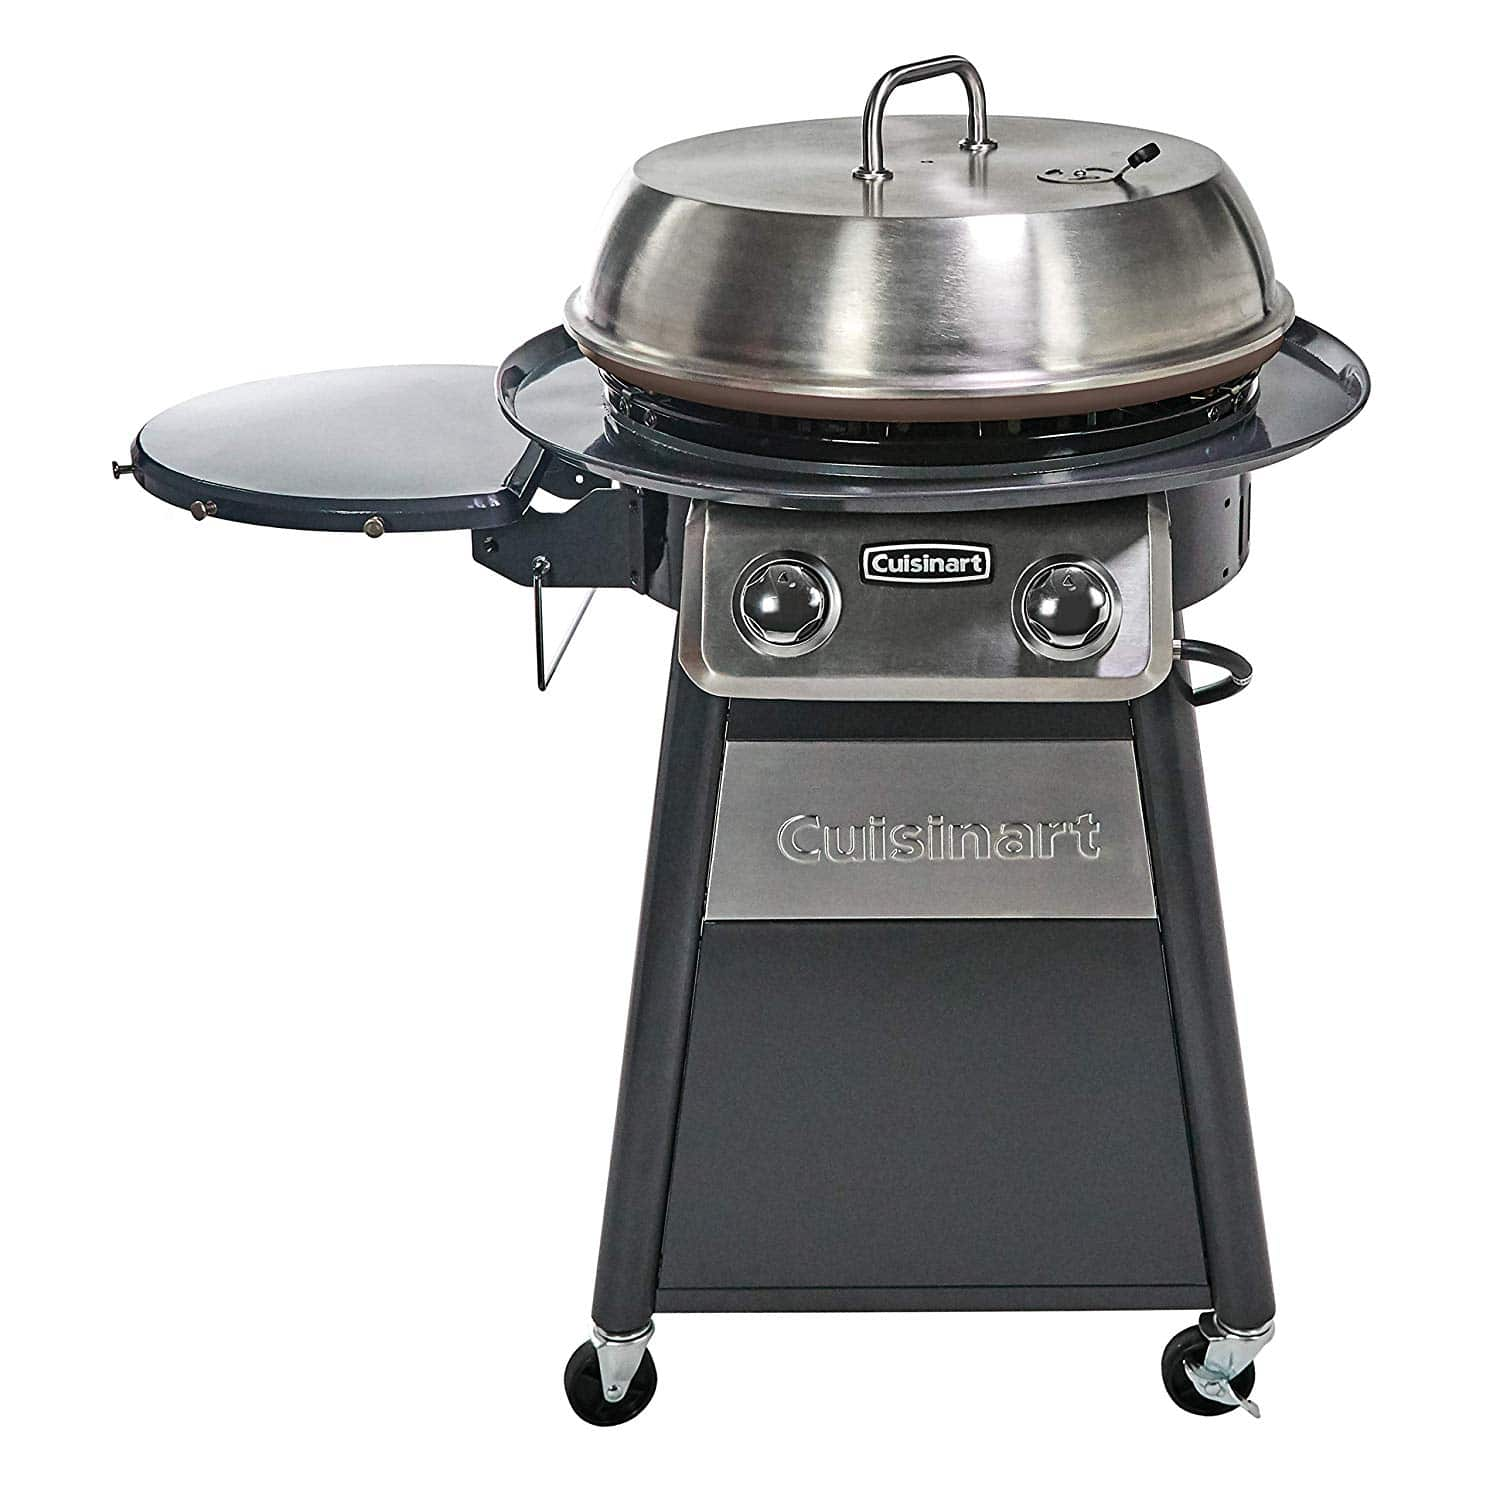 Cuisinart 360 griddle cooking center review